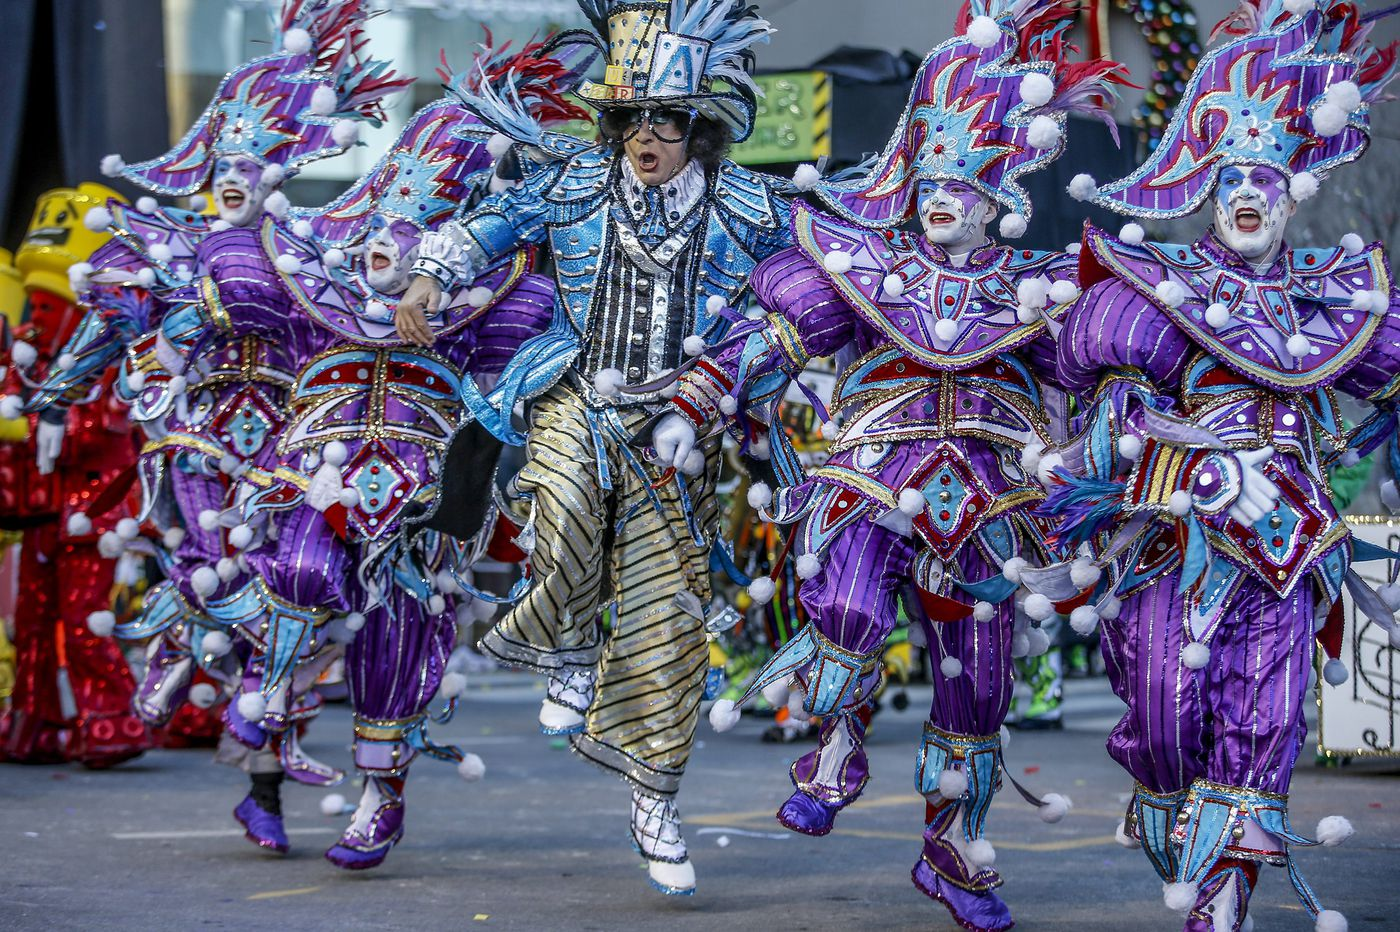 Less 'diversity' in 2019 Mummers Parade, but whose fault is that? | Stu Bykofsky